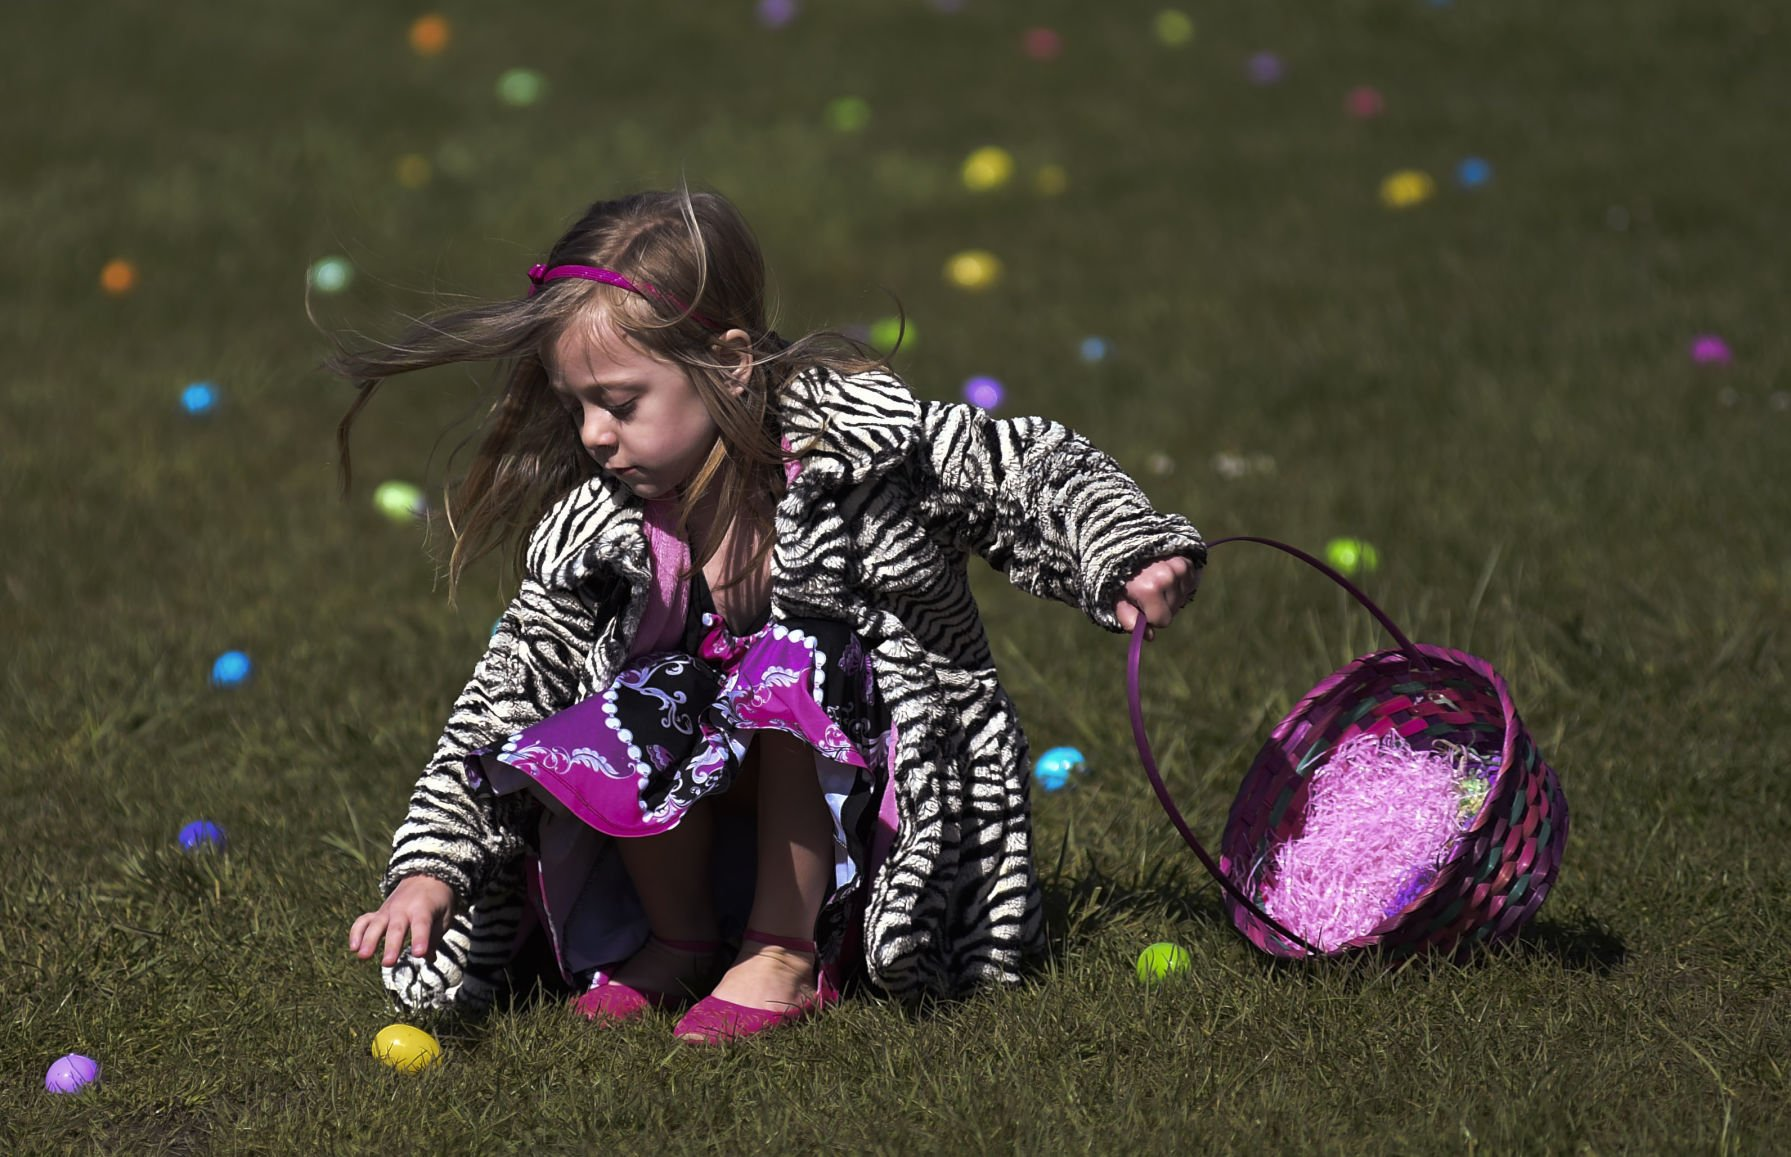 EVENT CANCELLED: Underwater egg hunt set for Saturday